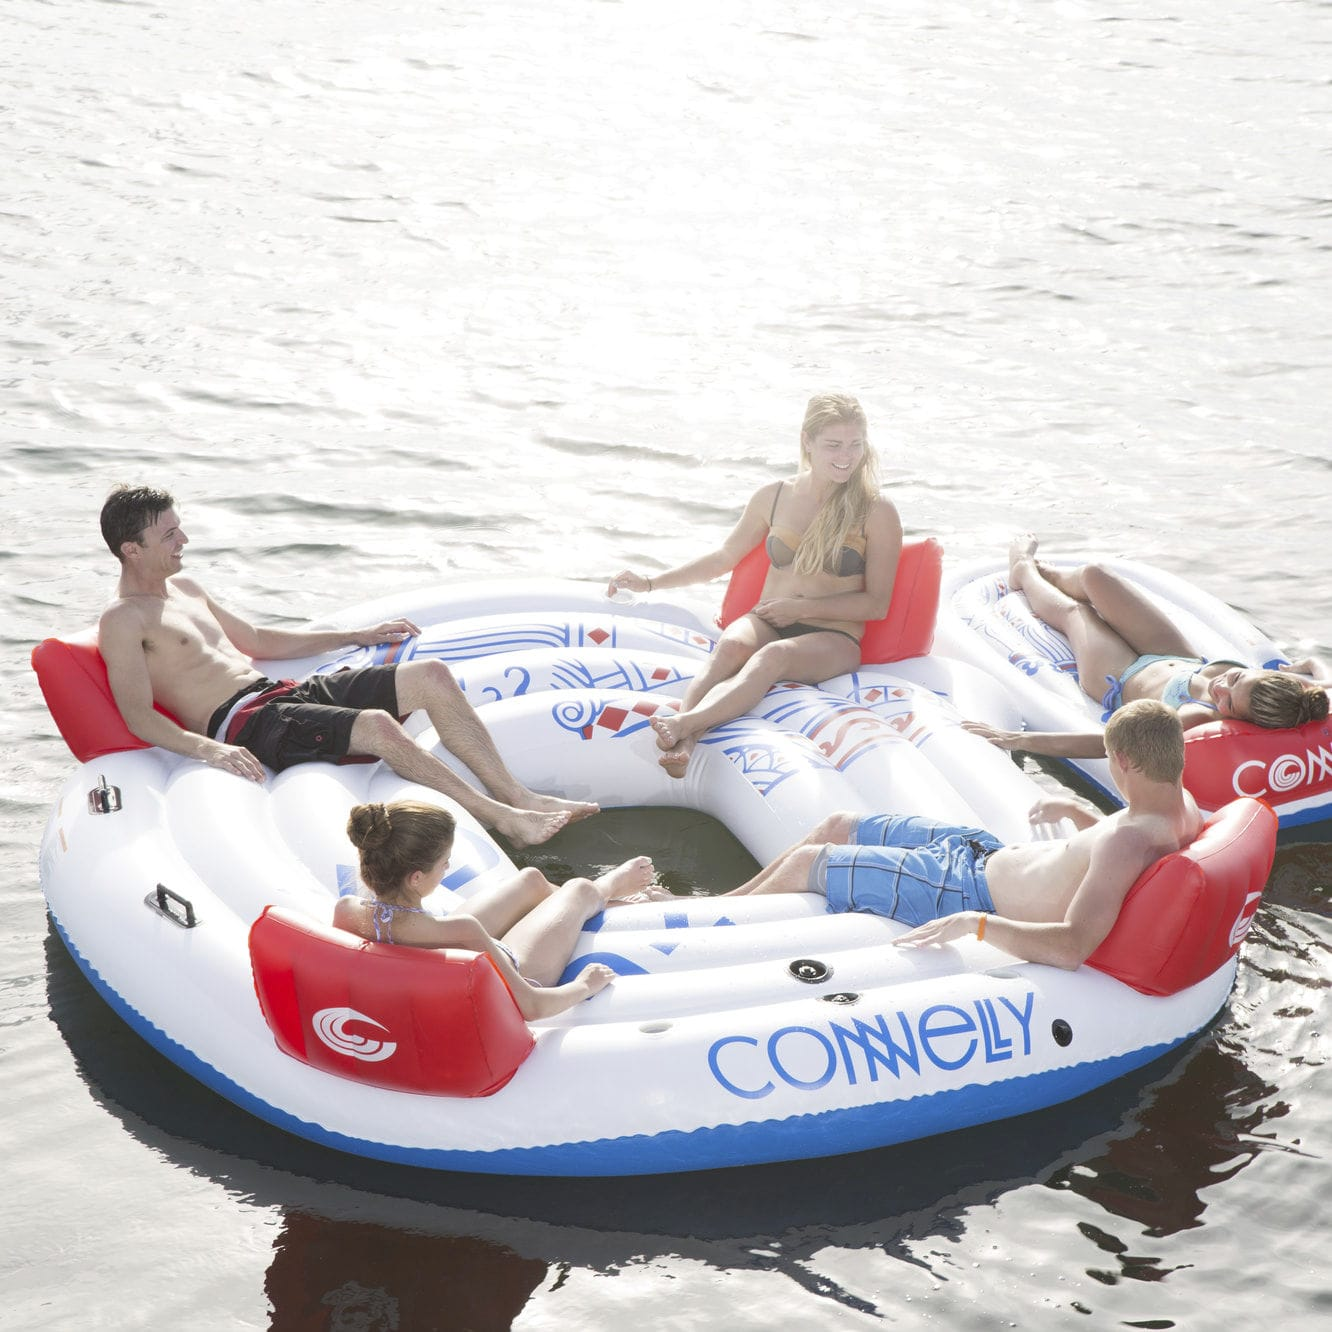 Mattress water toy / inflatable - DOCK KING - Connelly skis